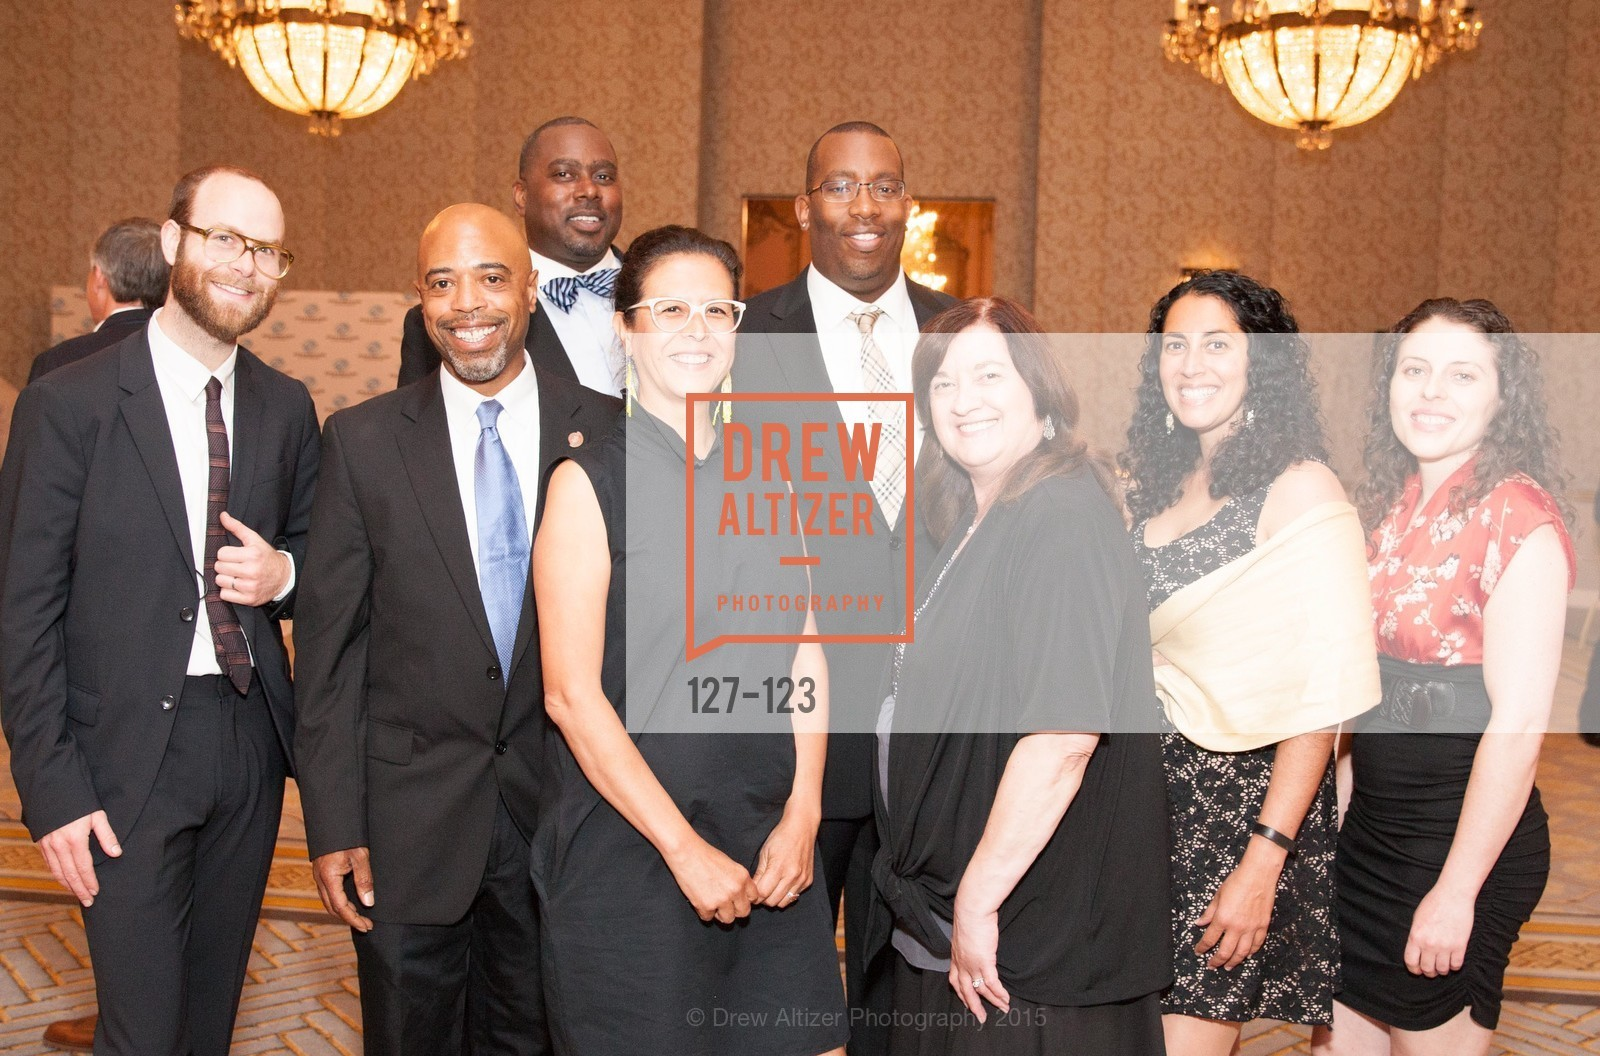 James Holley, Kat Zamora, Melissa Gibson, 2015 Boys and Girls Club Annual Gala, The Fairmont San Francisco. 950 Mason St, May 20th, 2015,Drew Altizer, Drew Altizer Photography, full-service agency, private events, San Francisco photographer, photographer california